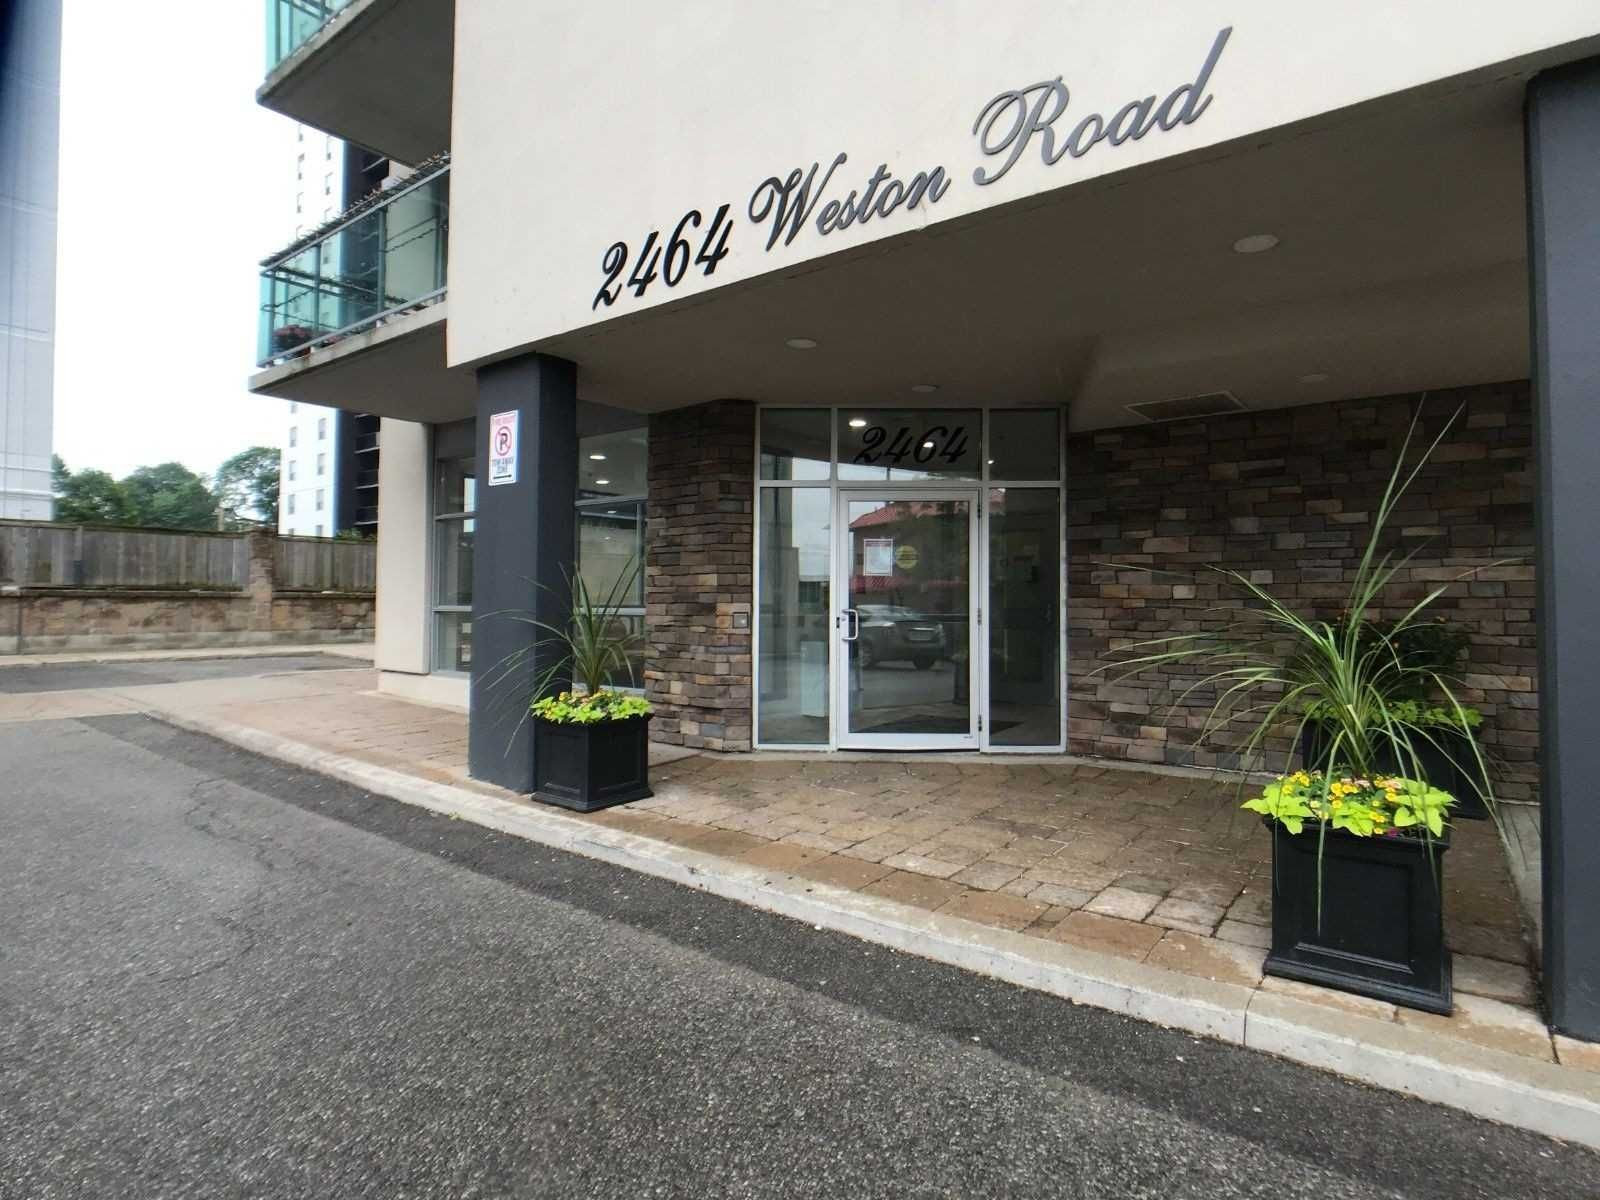 2464 Weston Rd, unit 914 for sale in Toronto - image #1